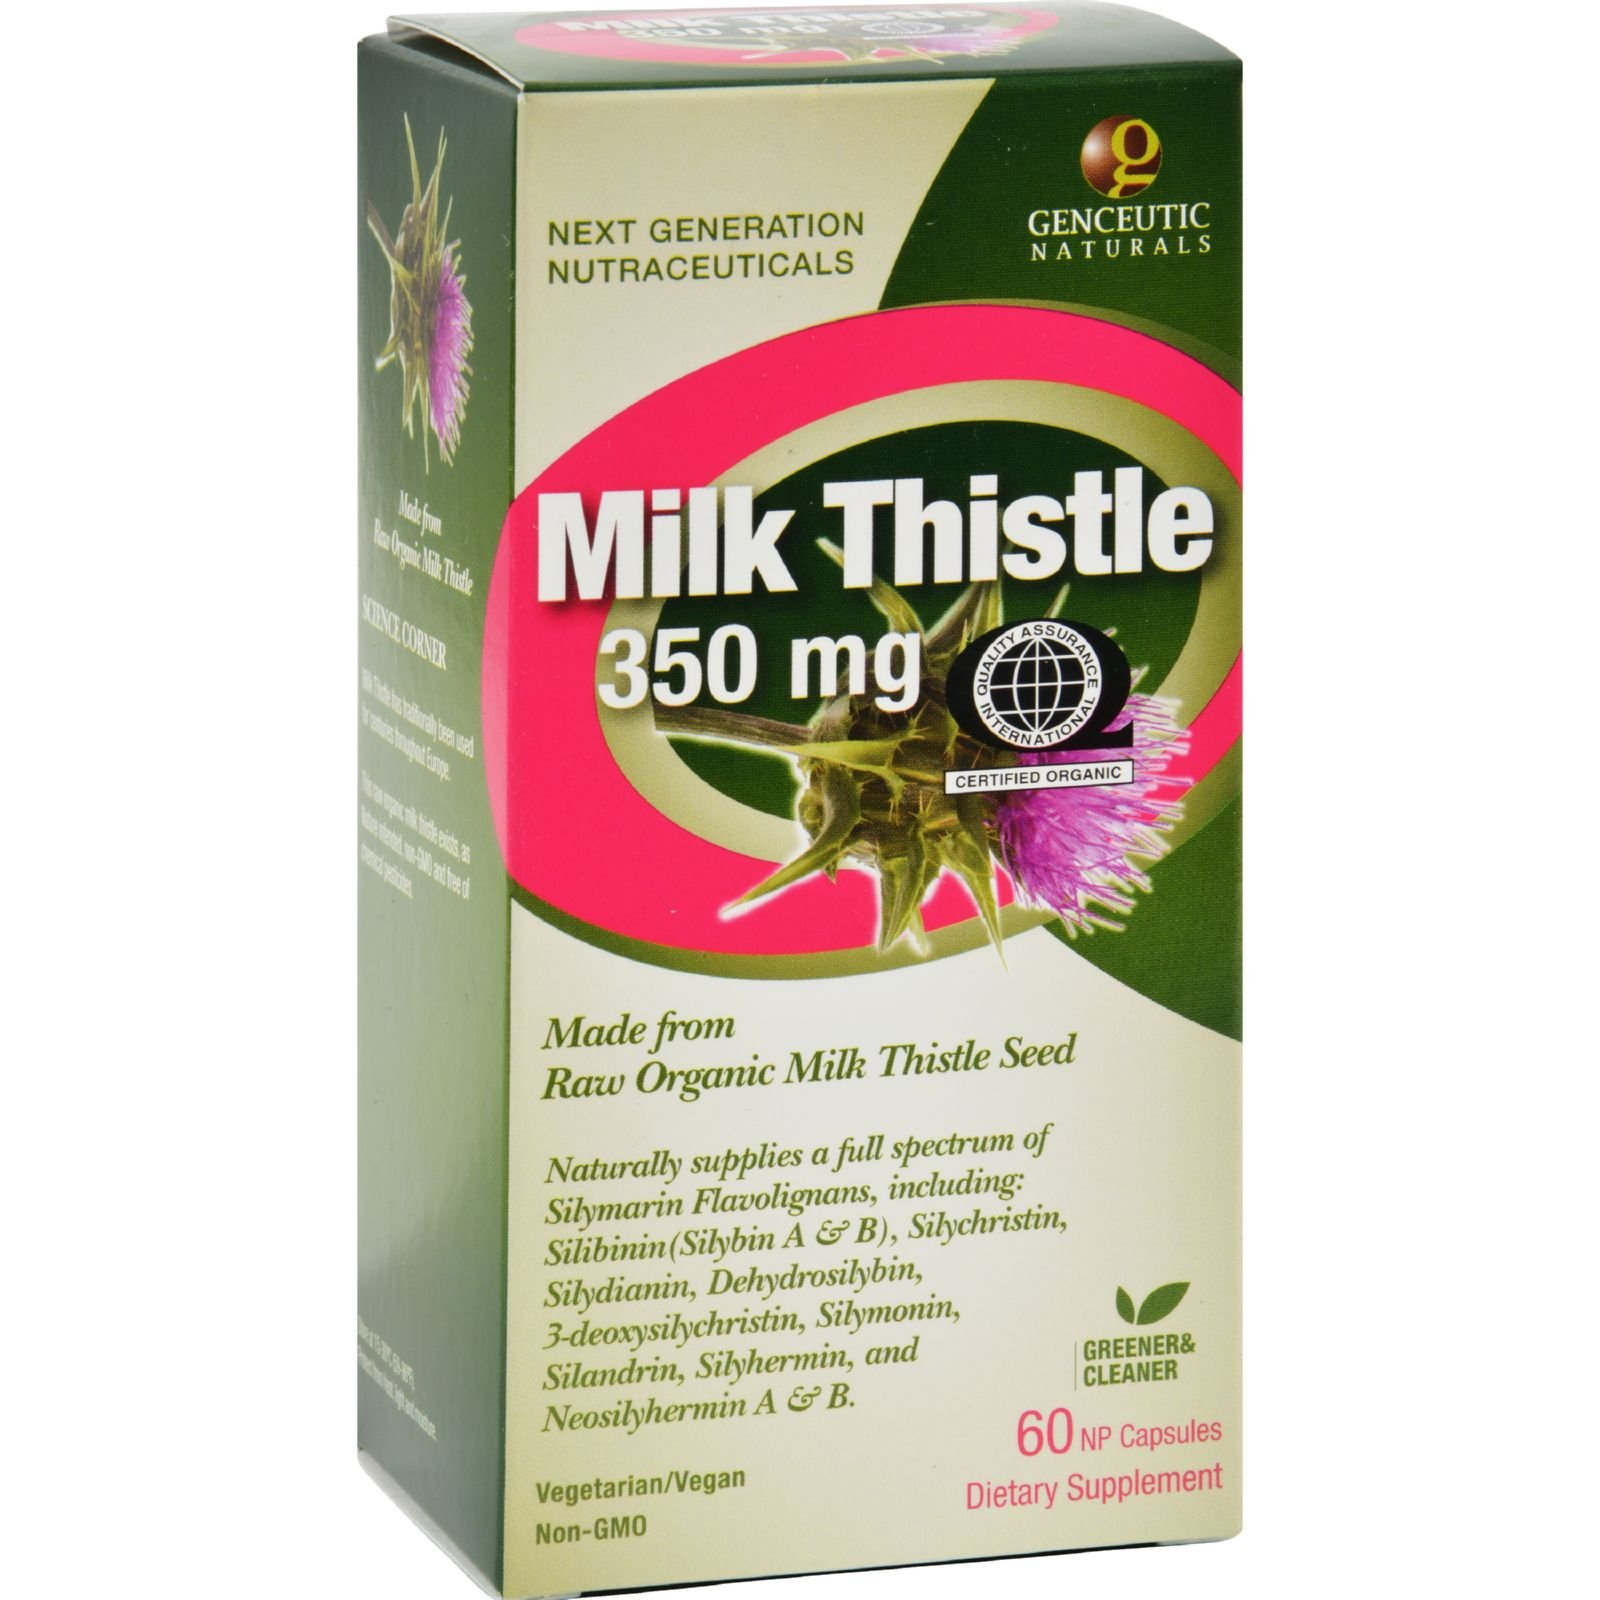 Genceutic Naturals Organic Milk Thistle - 350 mg - 60 Capsules (Pack of 4)